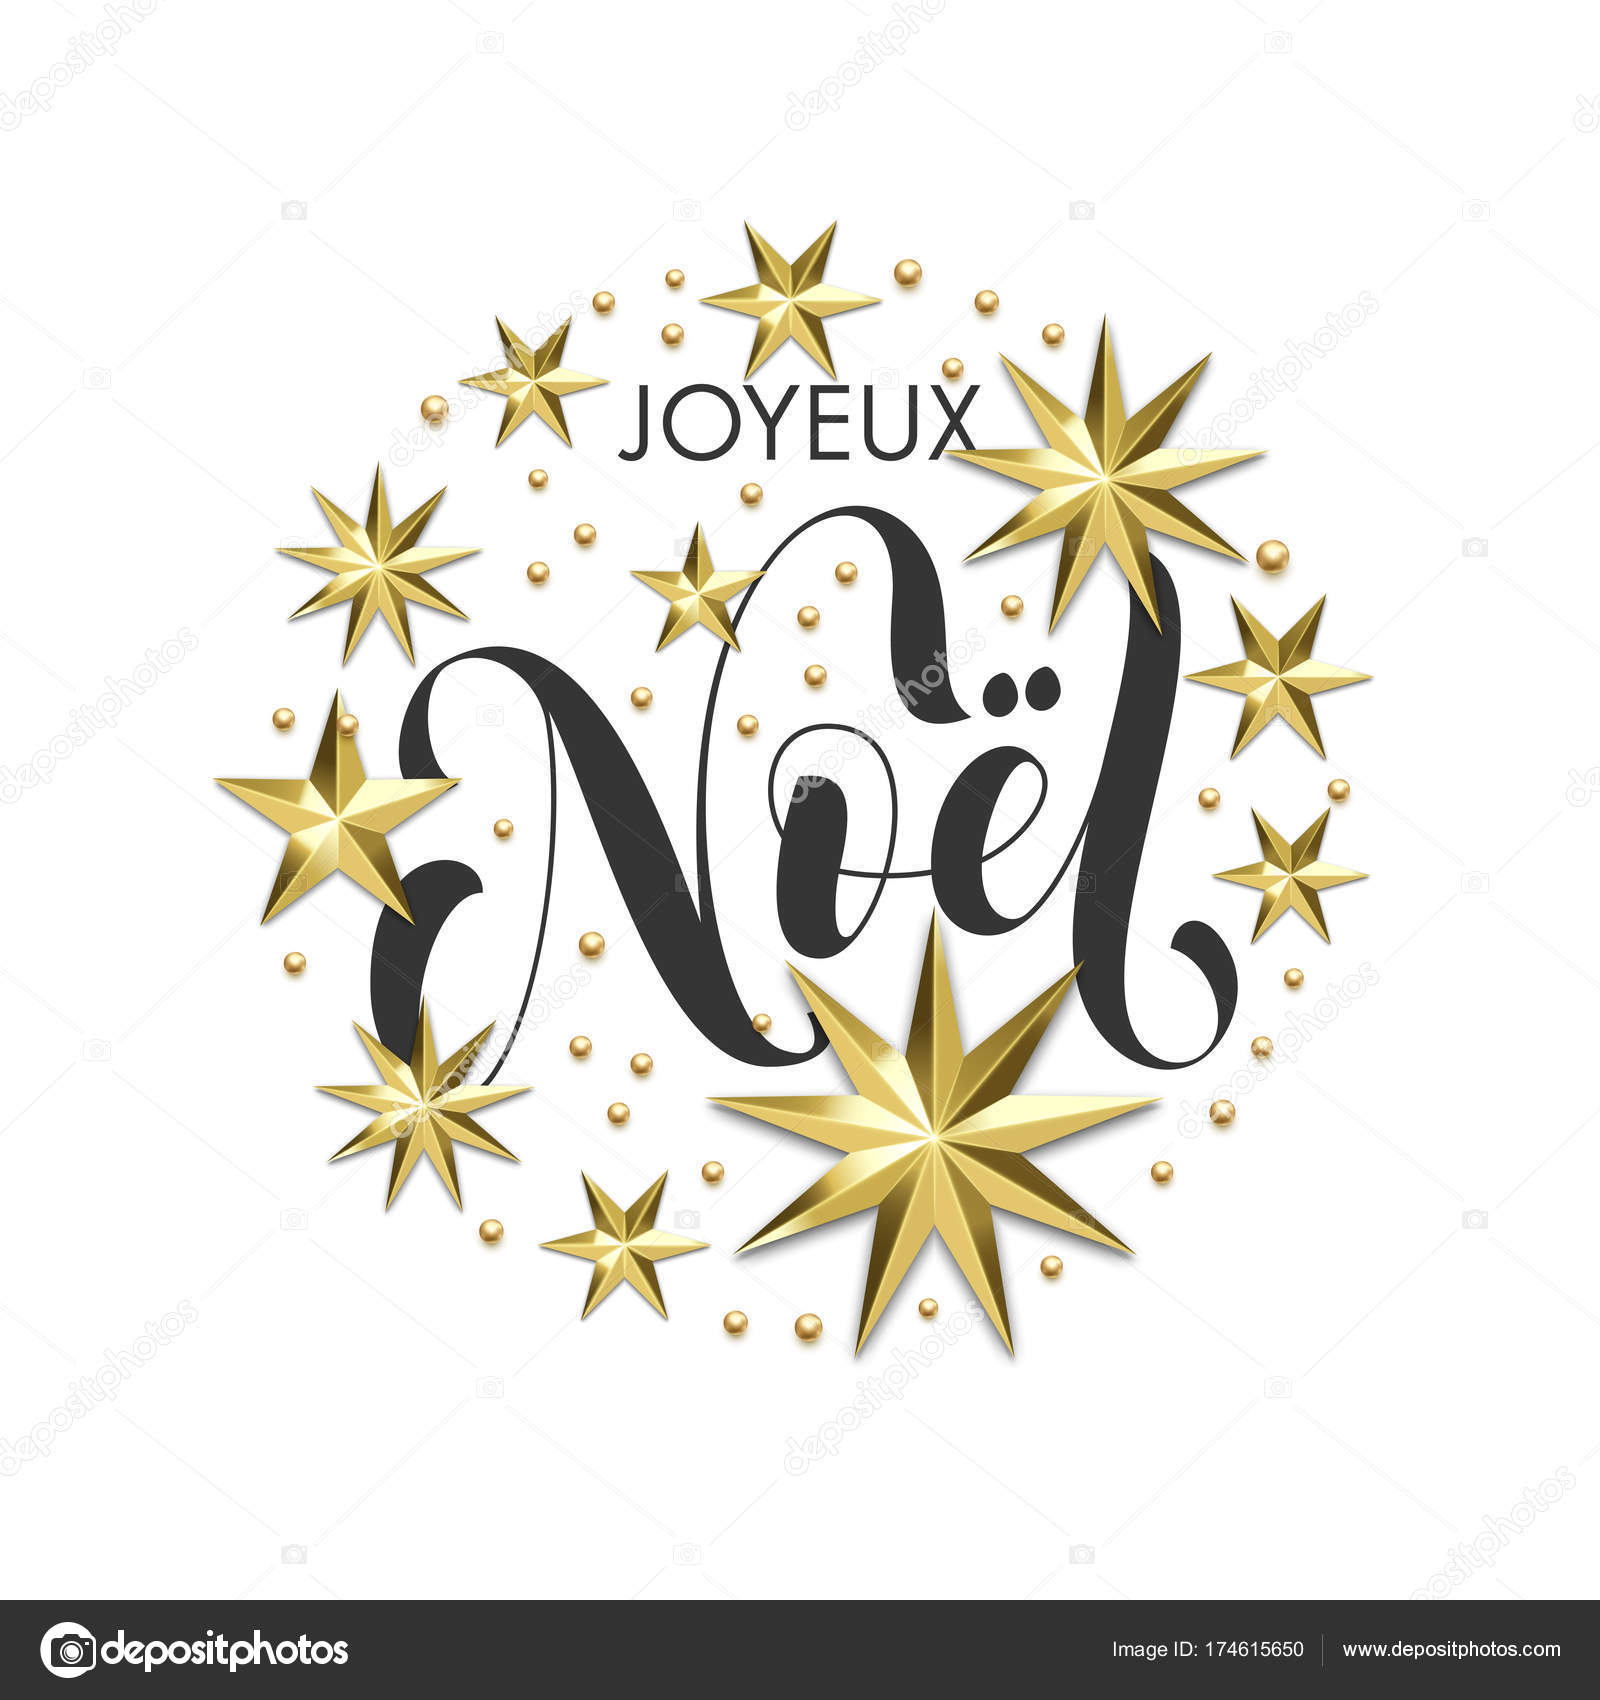 Joyeux noel french merry christmas golden star decoration joyeux noel french merry christmas golden star decoration calligraphy font for invitation or xmas greeting card vector christmas or new year holiday gold stopboris Gallery